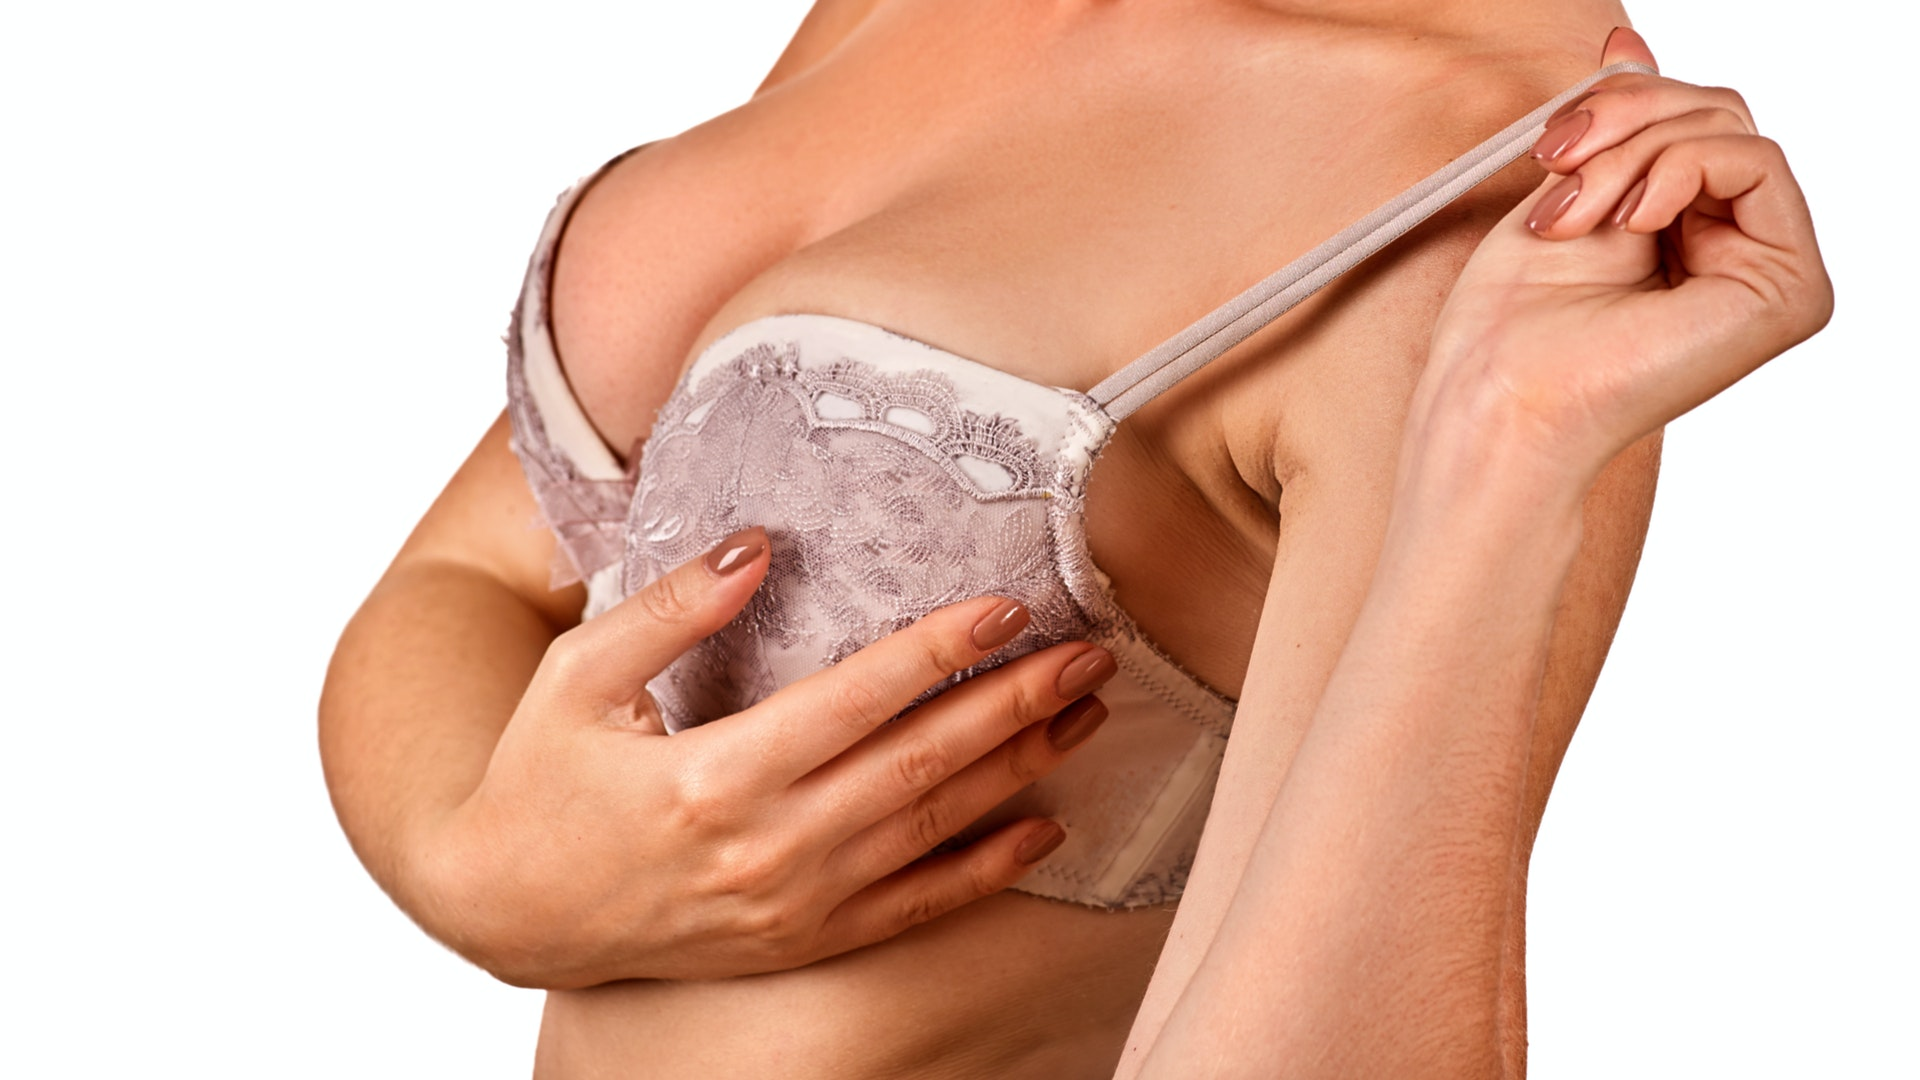 Breast swelling reasons